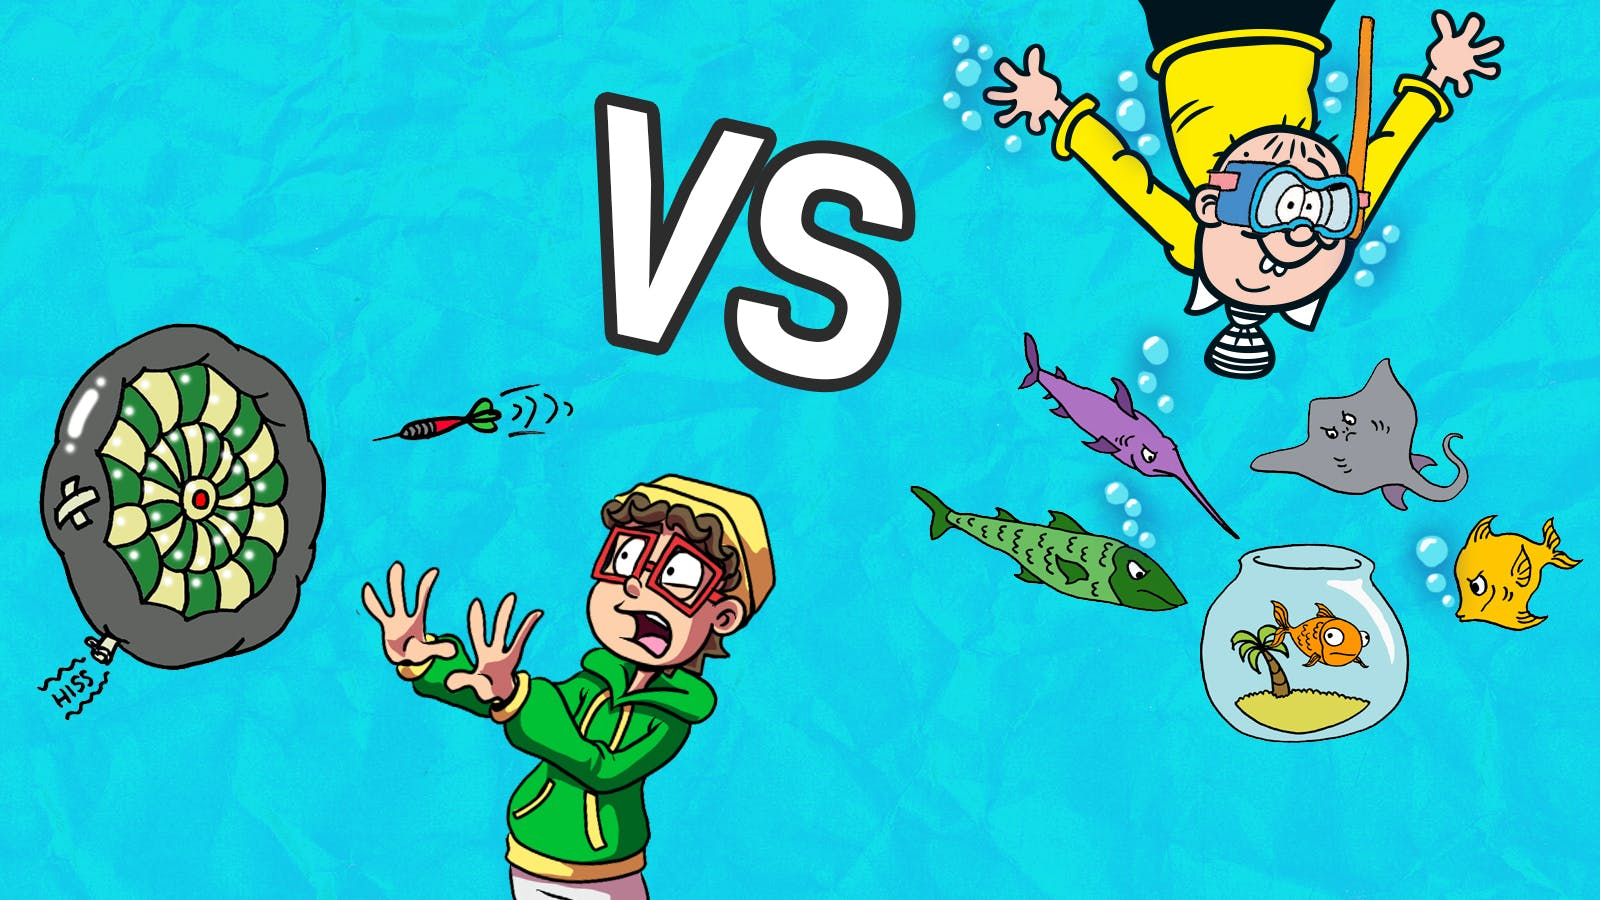 Inflatable Dartboard or Underwater Fishbowl- Pieface and Smiffy go Head2Head